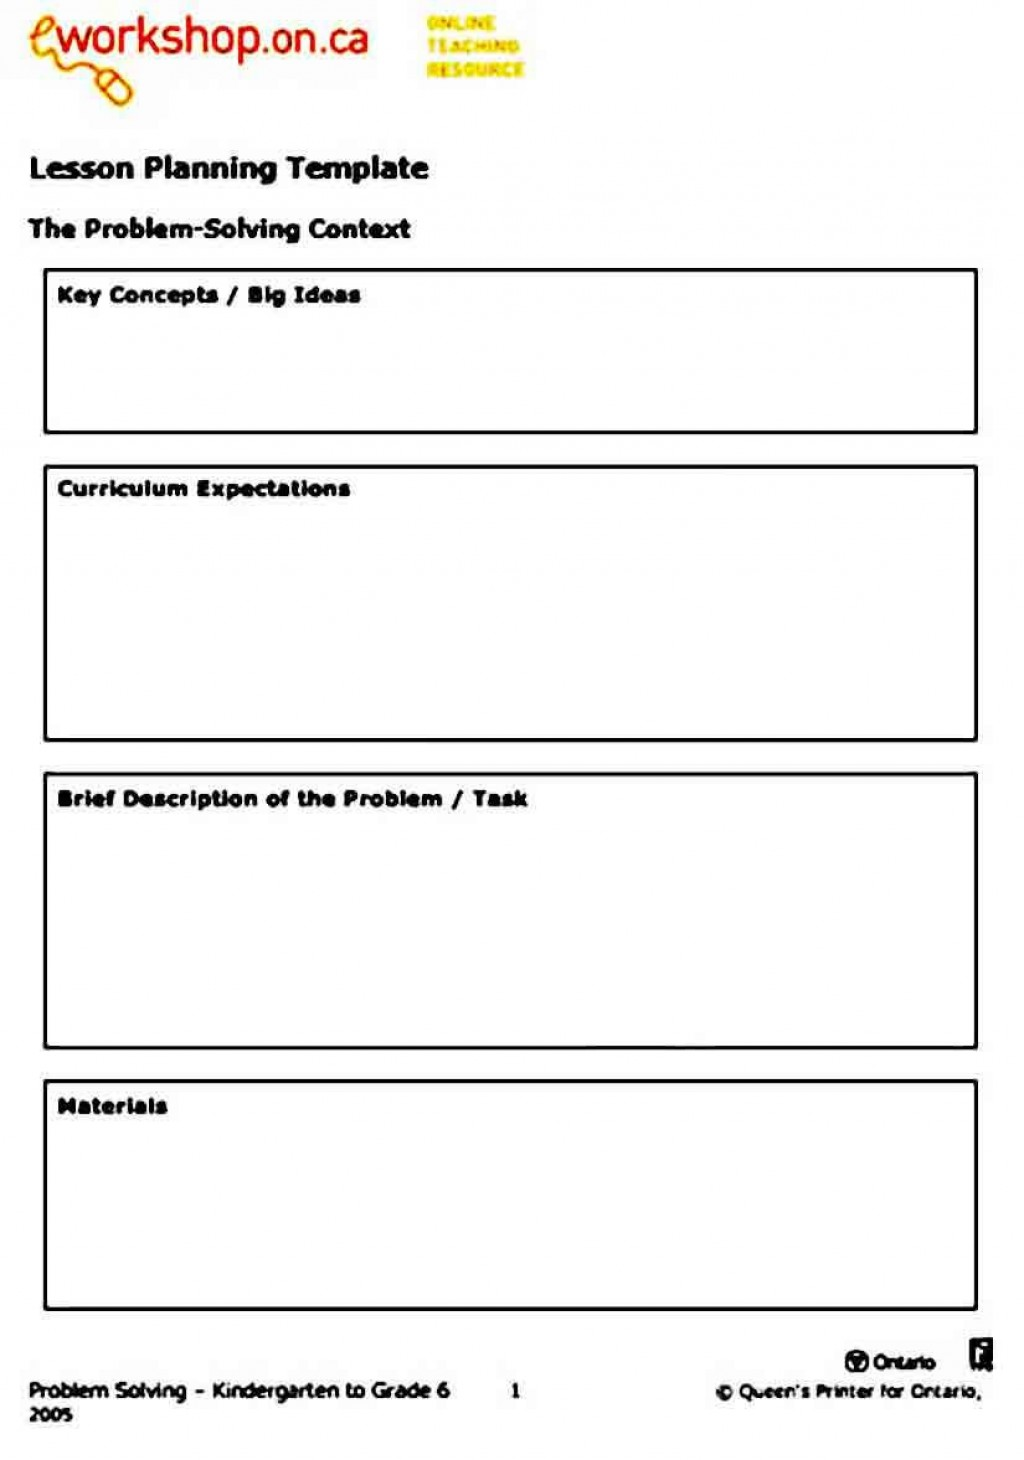 008 Surprising Simple Lesson Plan Template High Definition  Basic Format For Preschool Doc KindergartenLarge